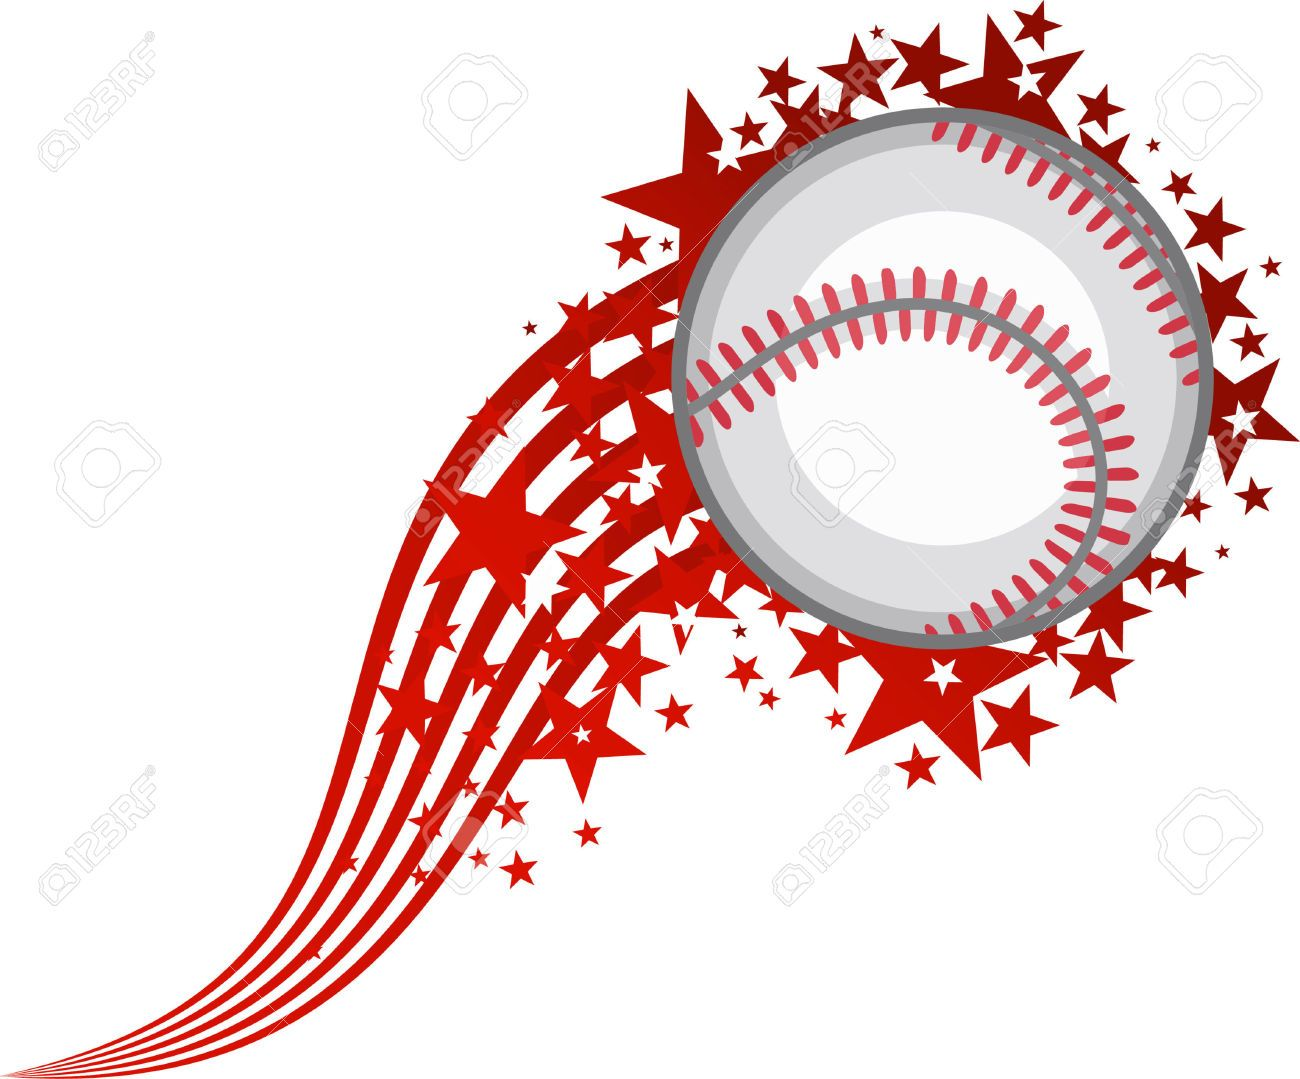 Flying softball clipart png transparent Clip Art of Flying Home – Clipart Download | All Star | Clip art ... png transparent